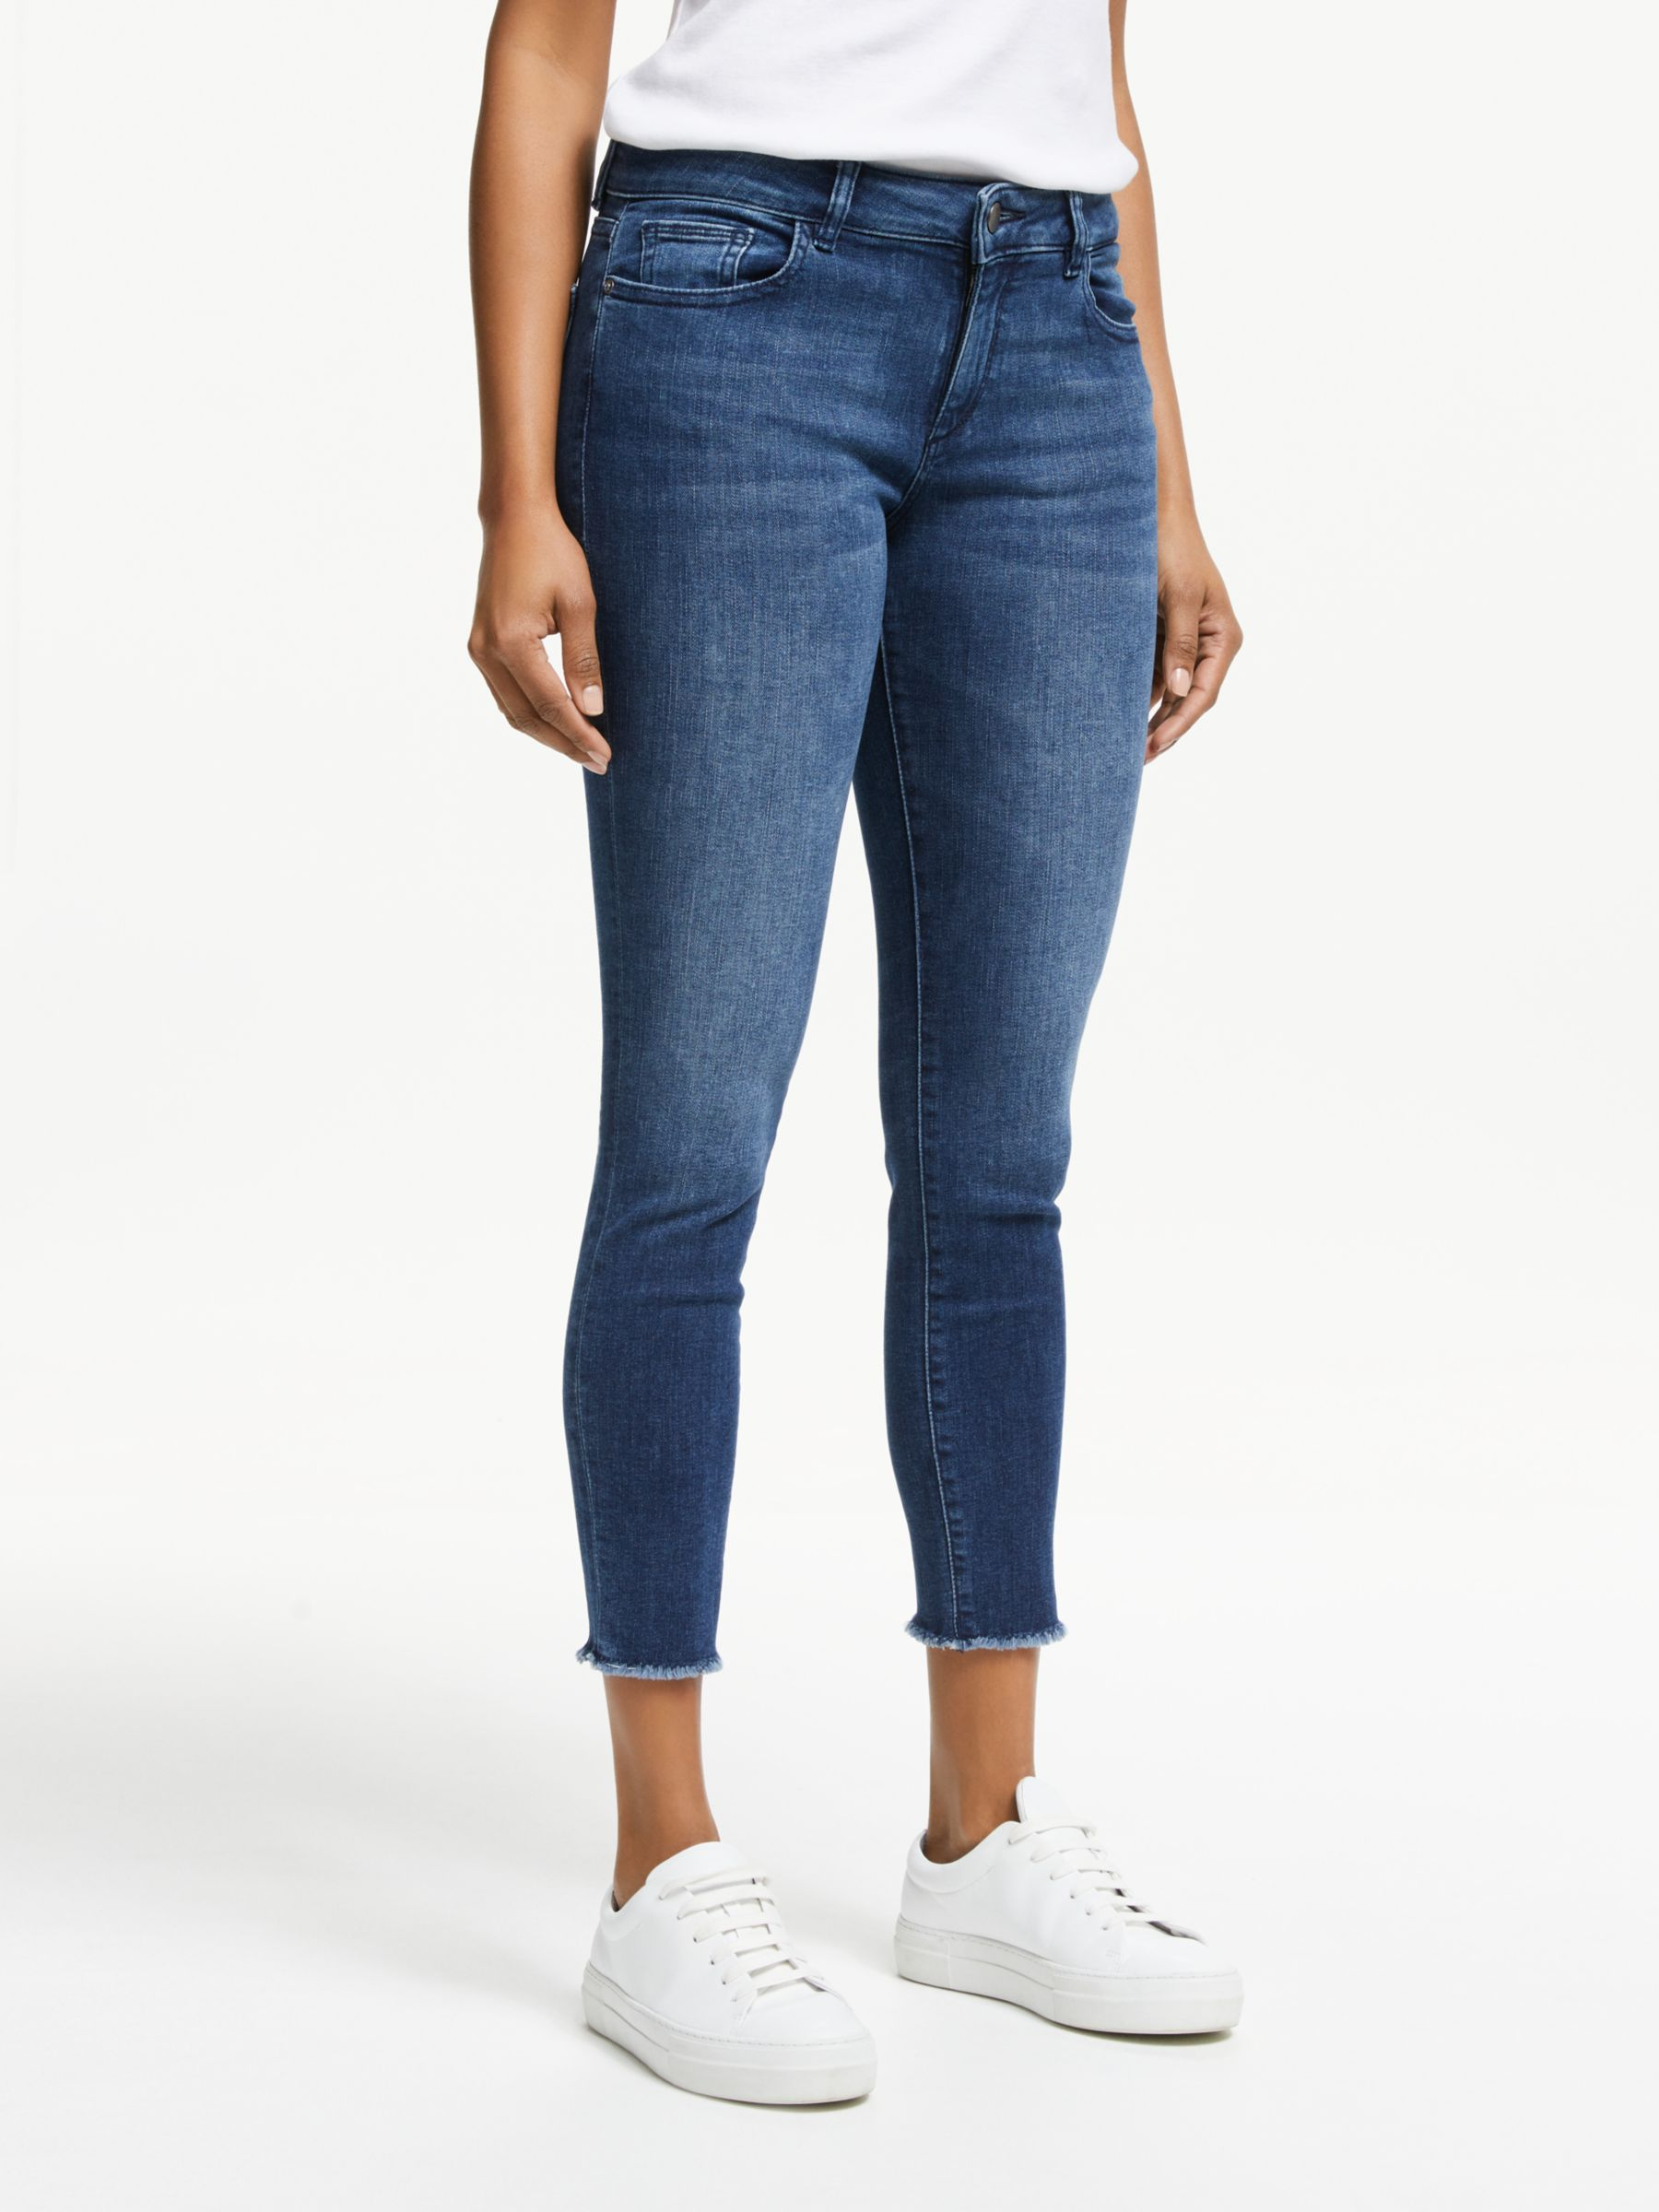 DL1961 DL1961 Florence Mid Rise Cropped Skinny Jeans, Stranded